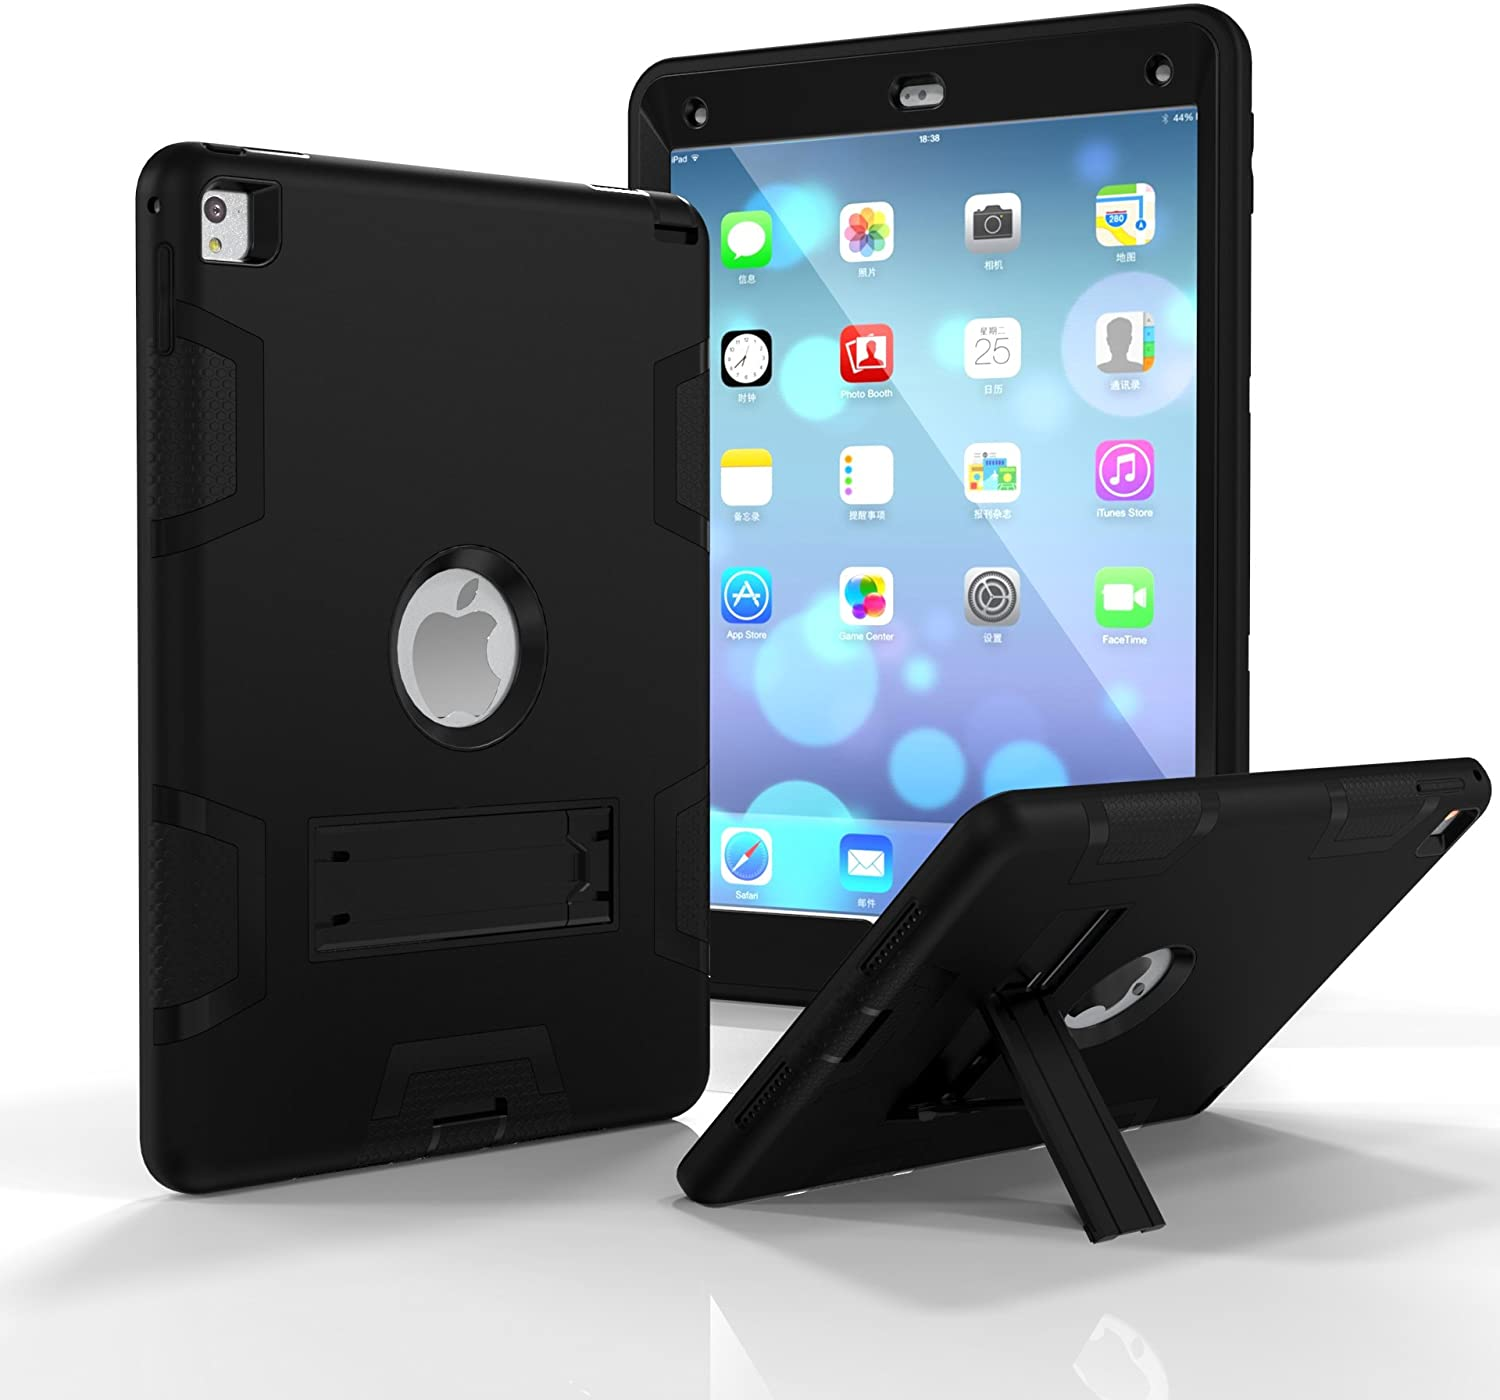 iPad Air 2 Case,iPad 6 Case, Dooge Three Layers PC&Silicon Armor Defender Heavy Duty Shock-Absorption Rugged Hybrid Full Body Protective Case with Kickstand for Apple iPad Air 2/ iPad 6 (2014 Model)